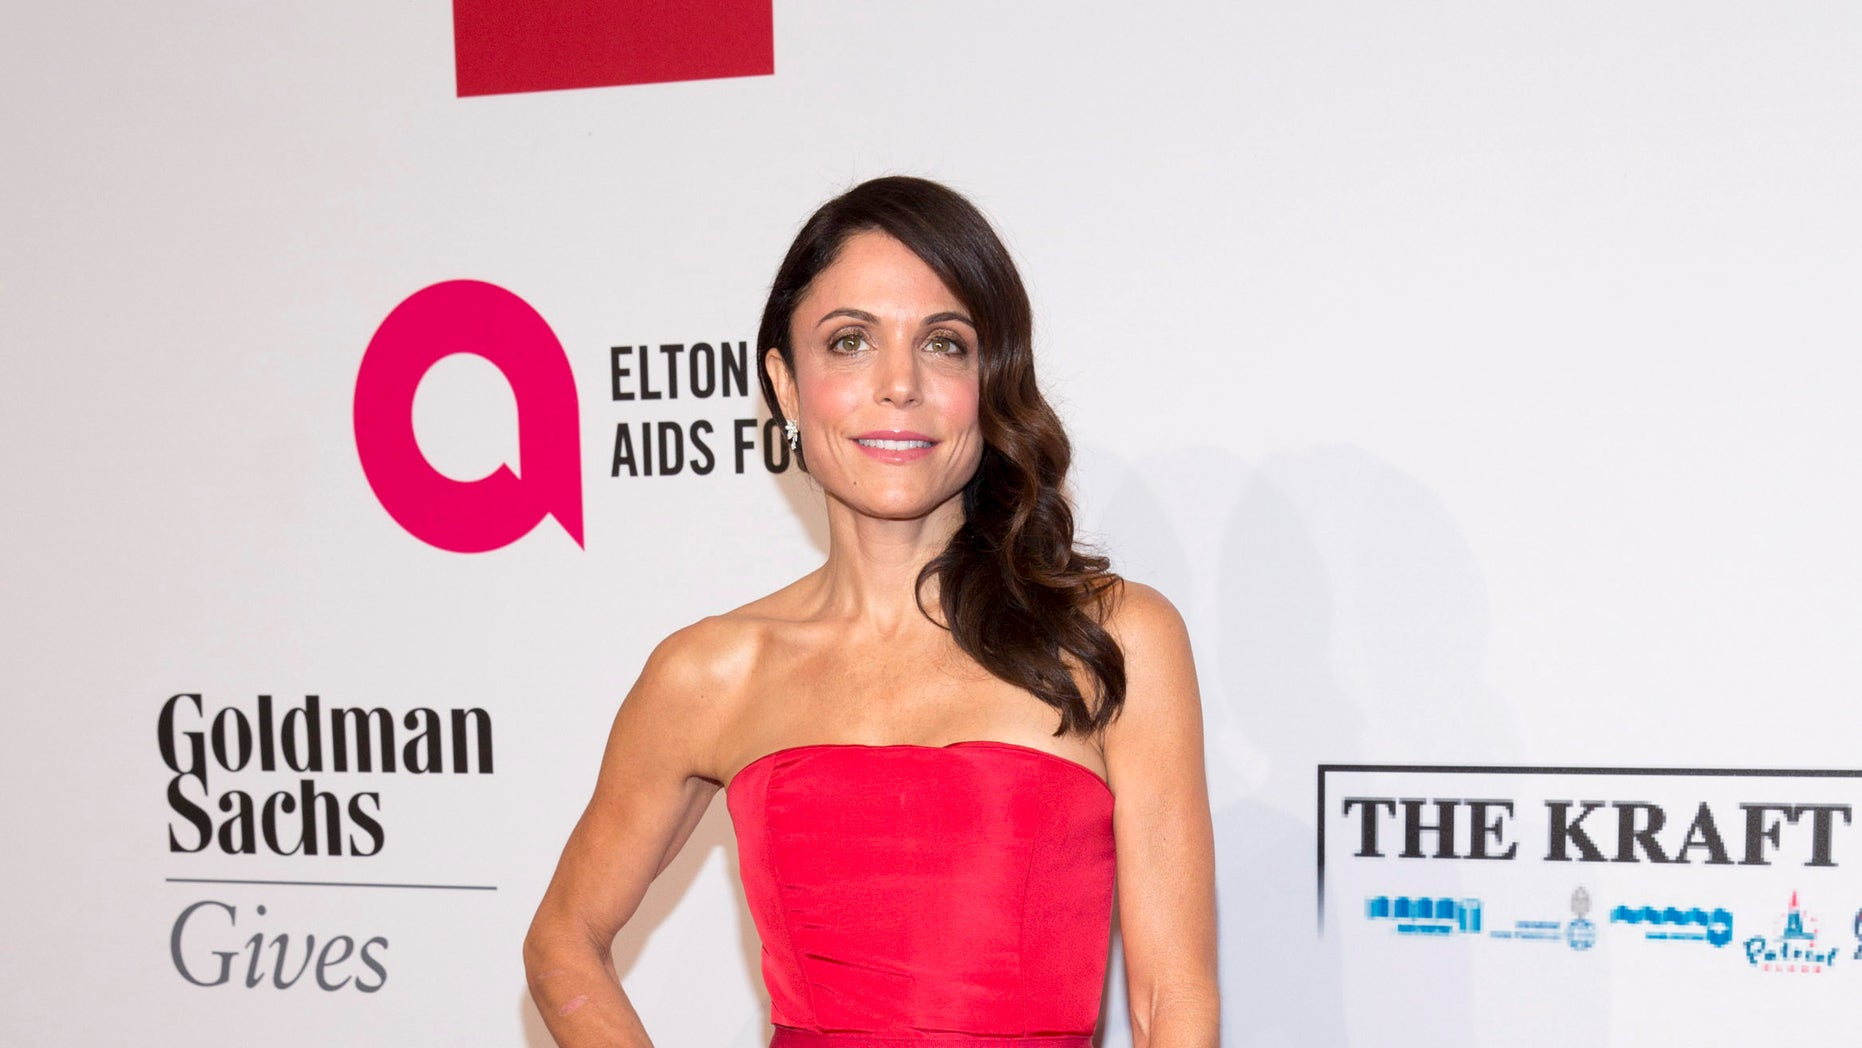 October 28, 2014. Bethenny Frankel attends the Elton John AIDS Foundation's 13th Annual An Enduring Vision Benefit in New York.